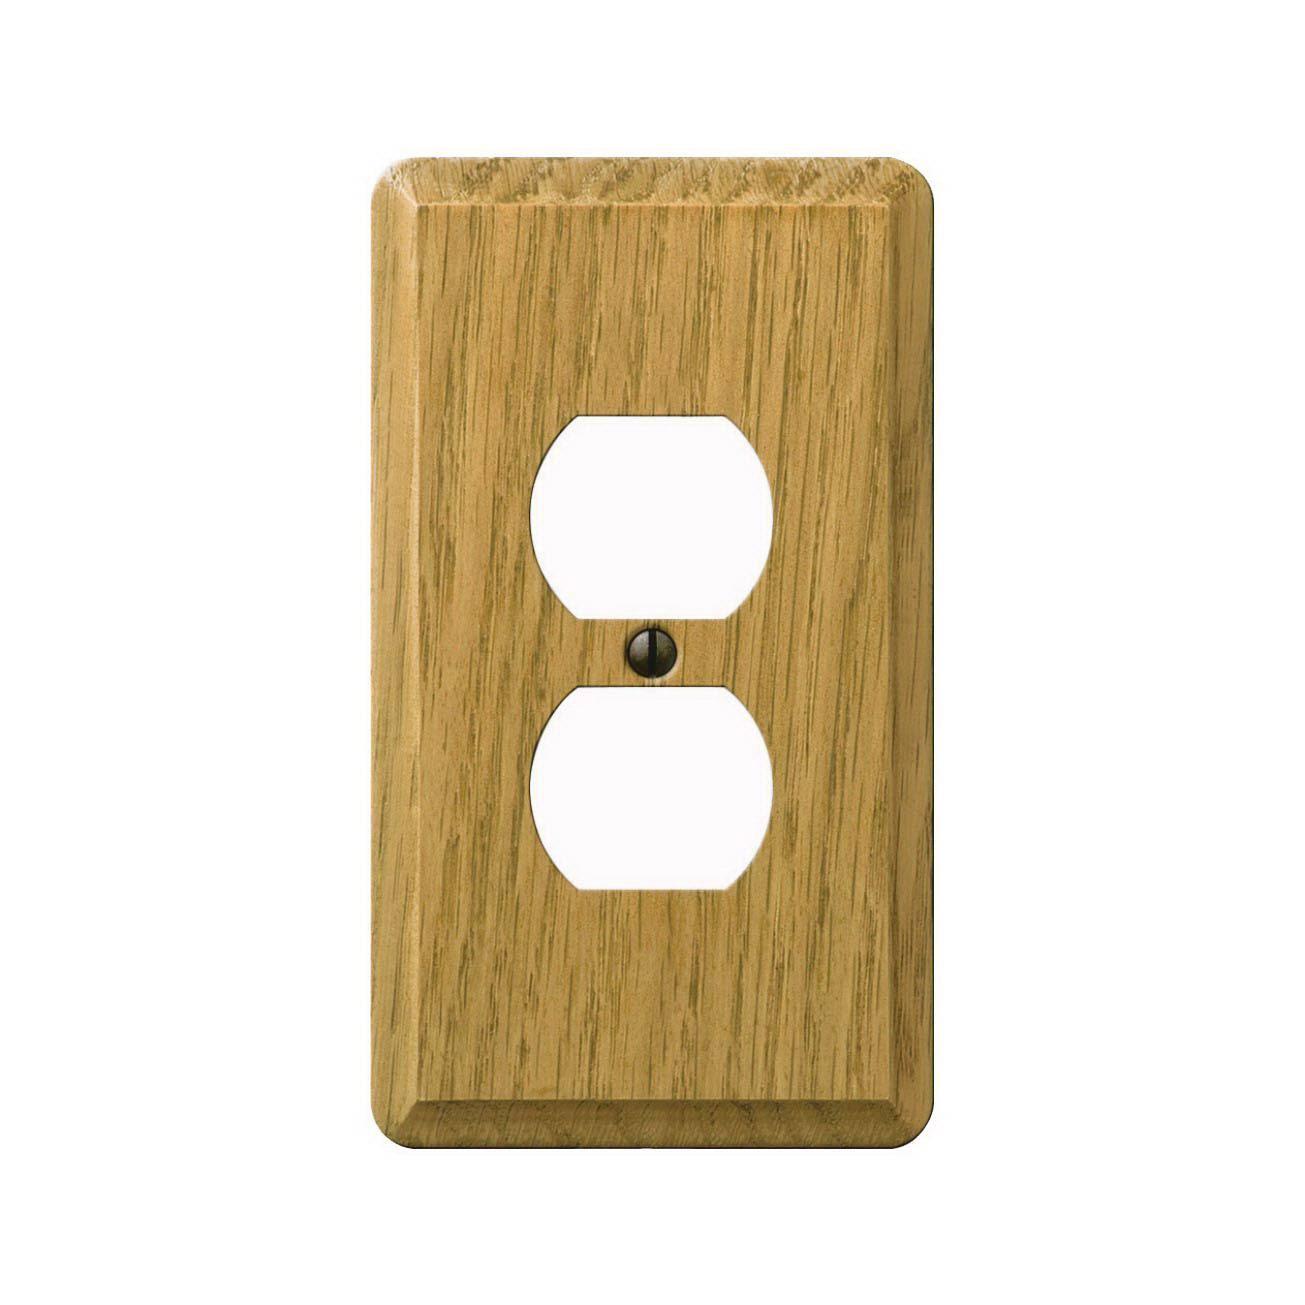 Jackson Deerfield 901DL Contemporary Wall Plate - Light Oak, 2 Outlet